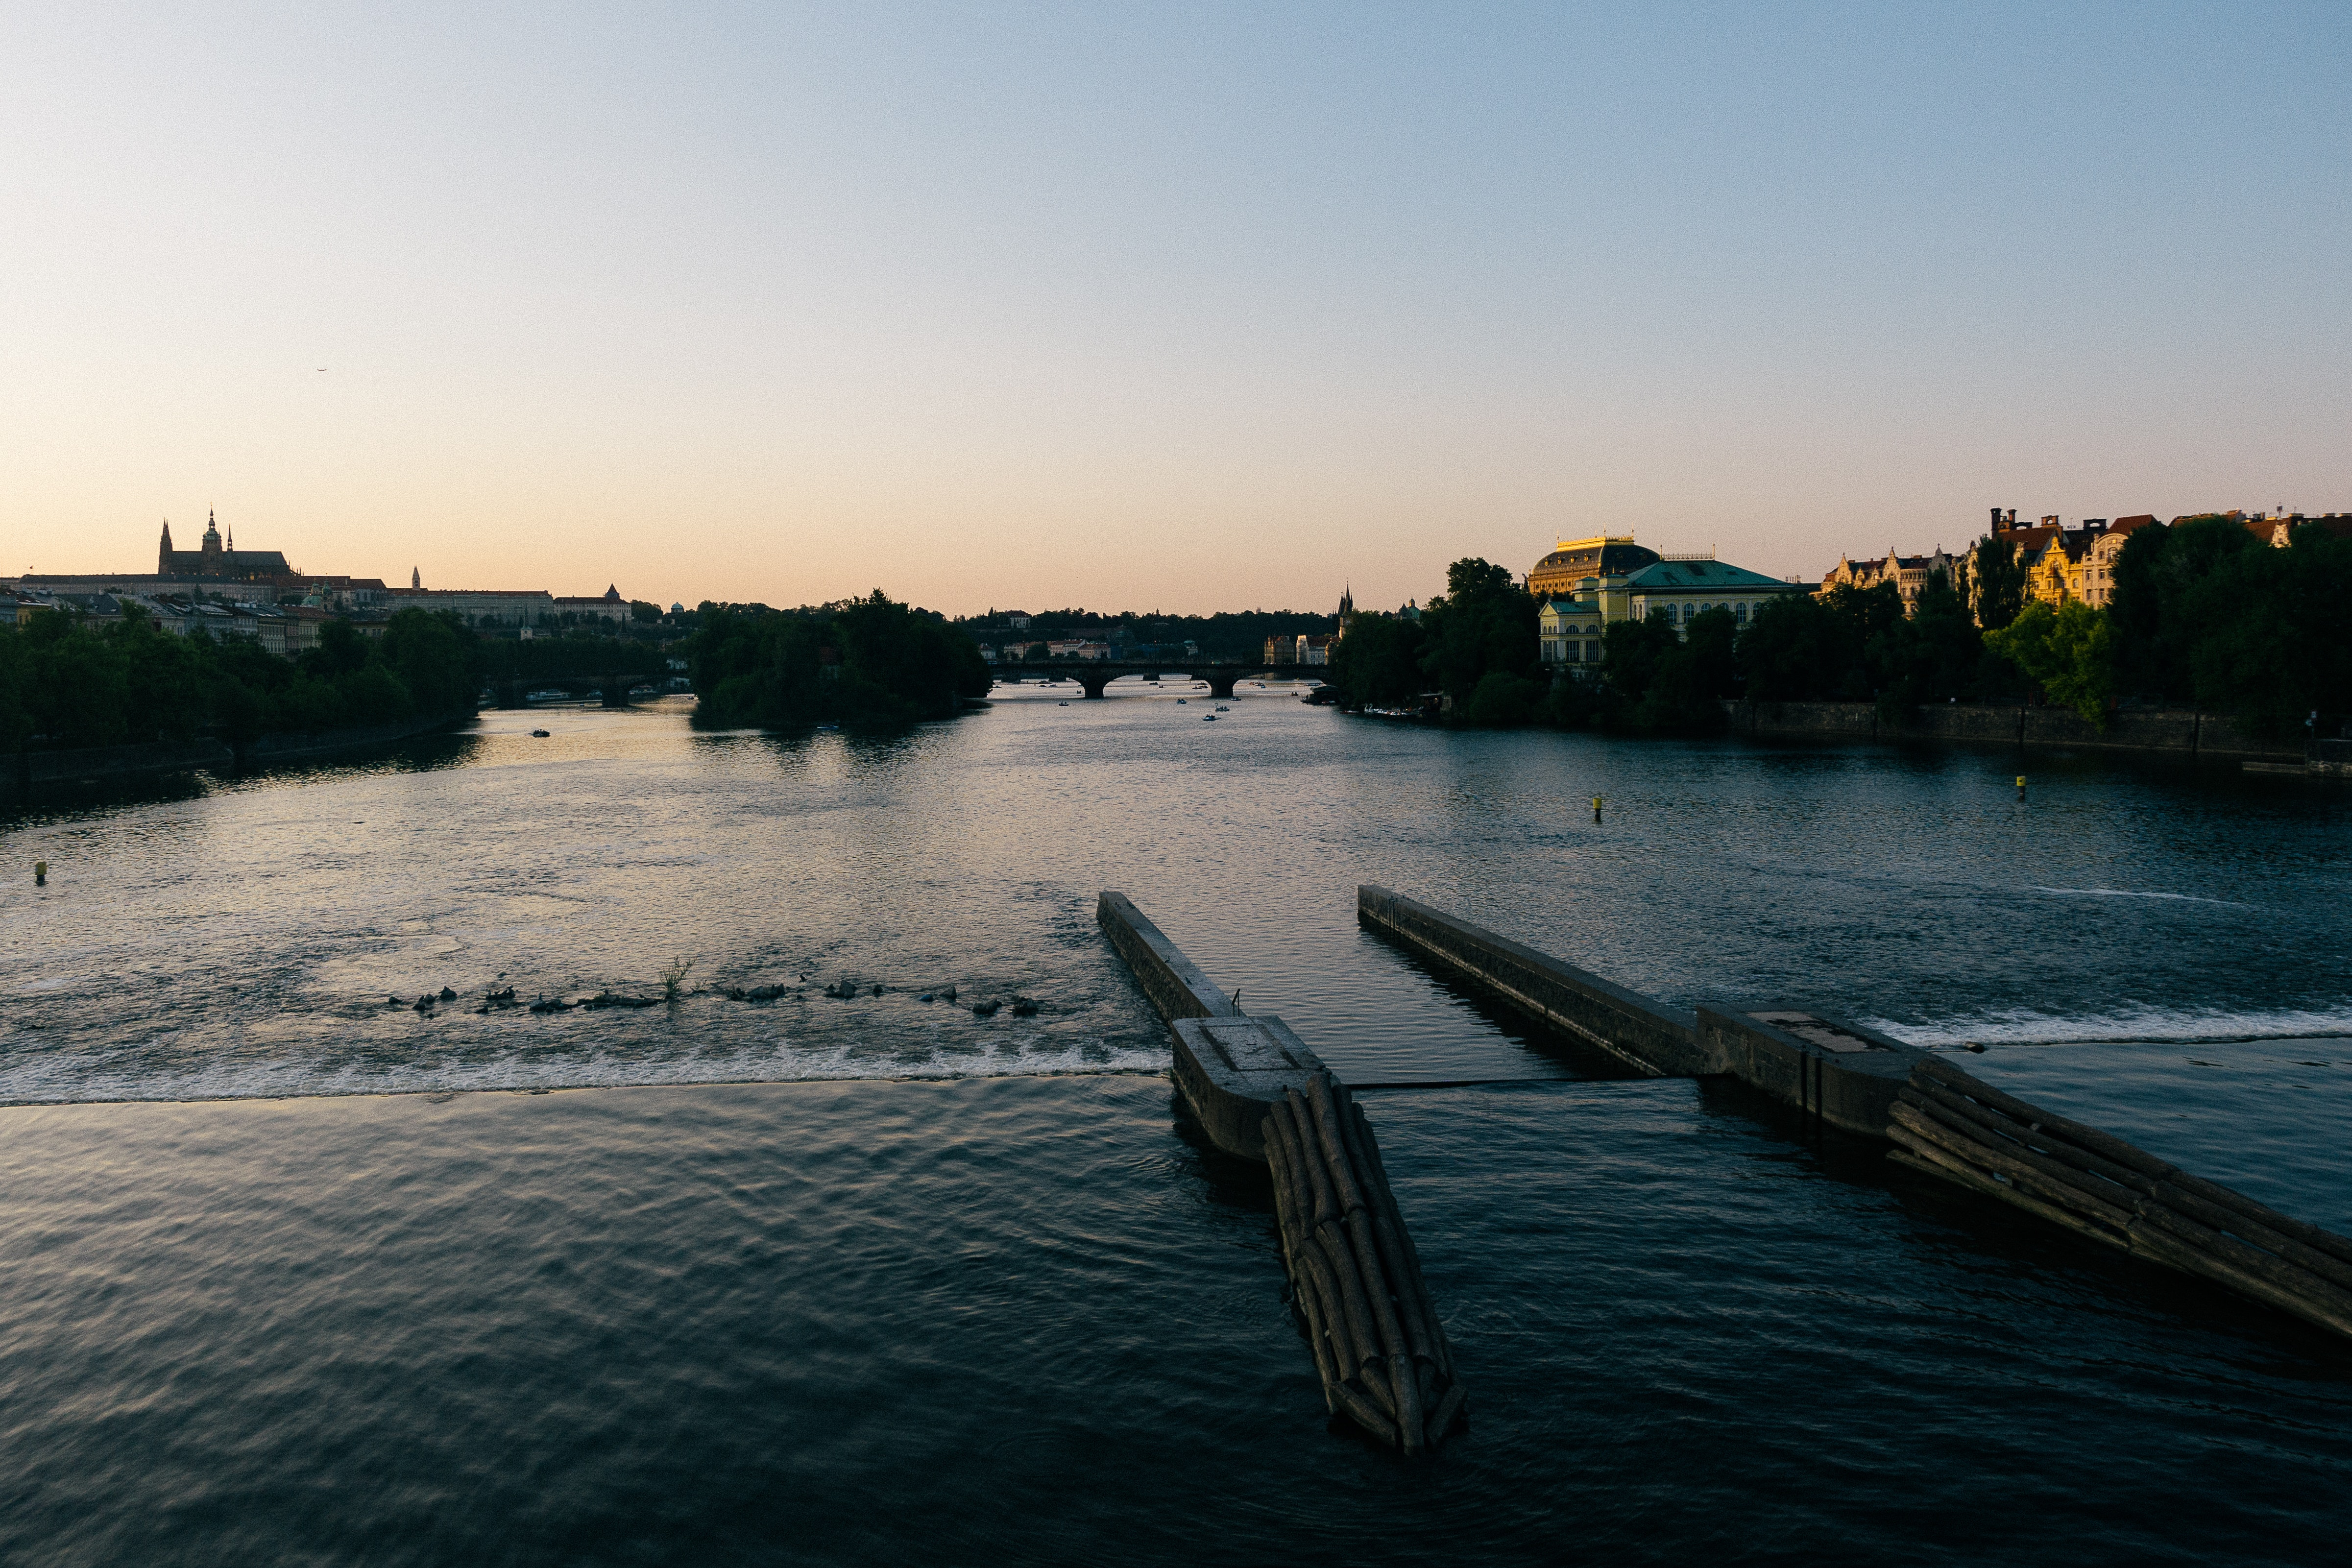 A weir looking north on the river at sunset